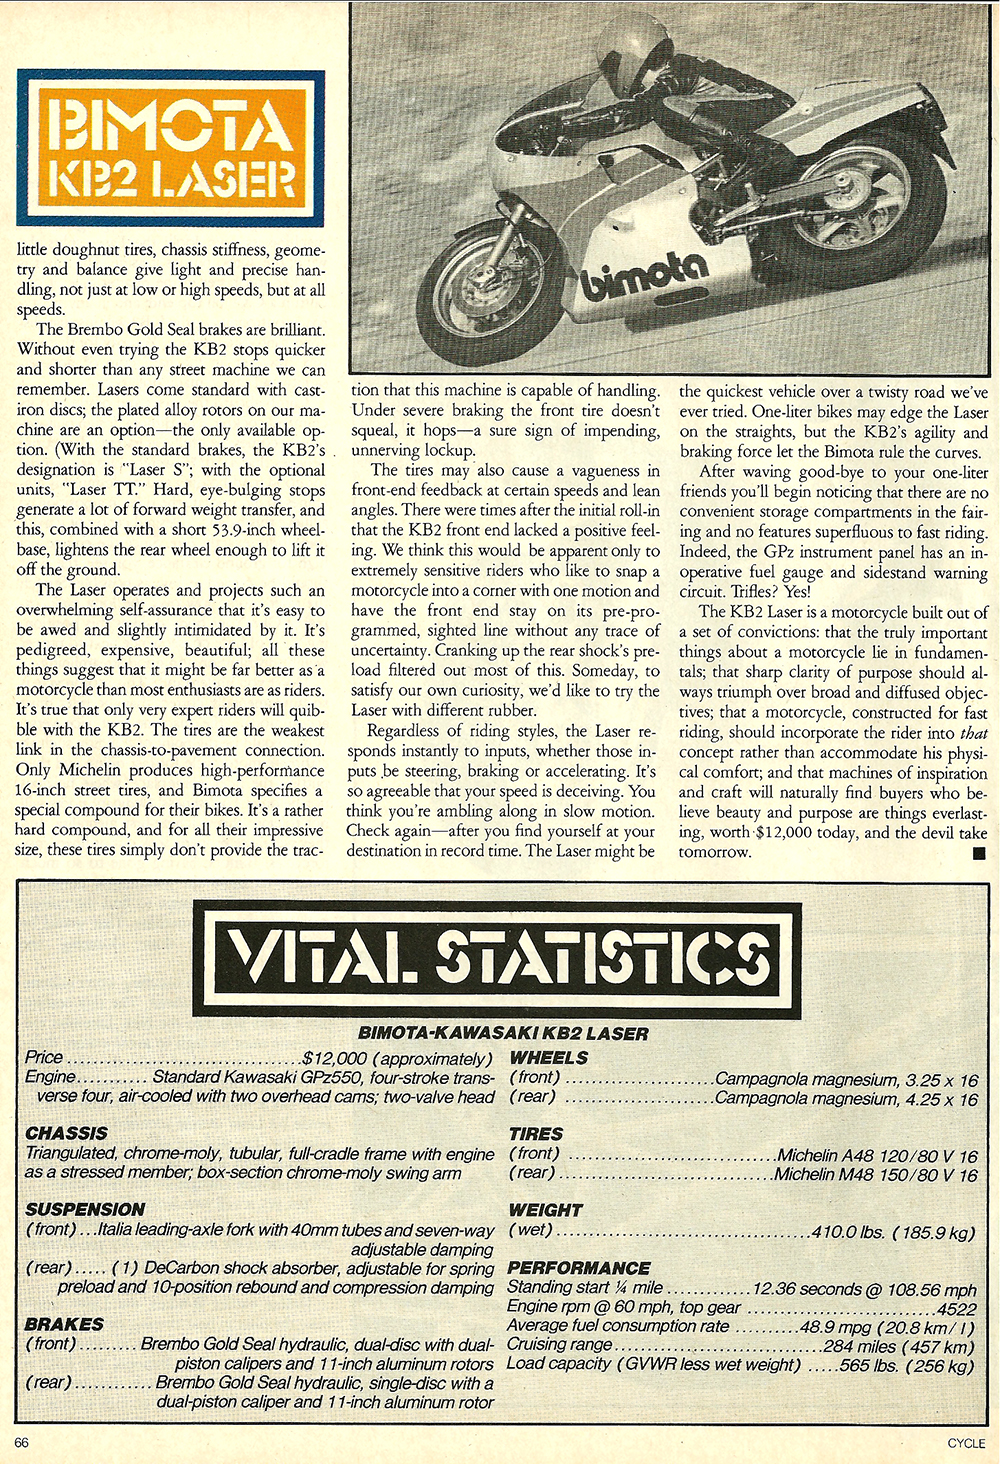 1982 Bimota KB2 Laser road test 9.jpg